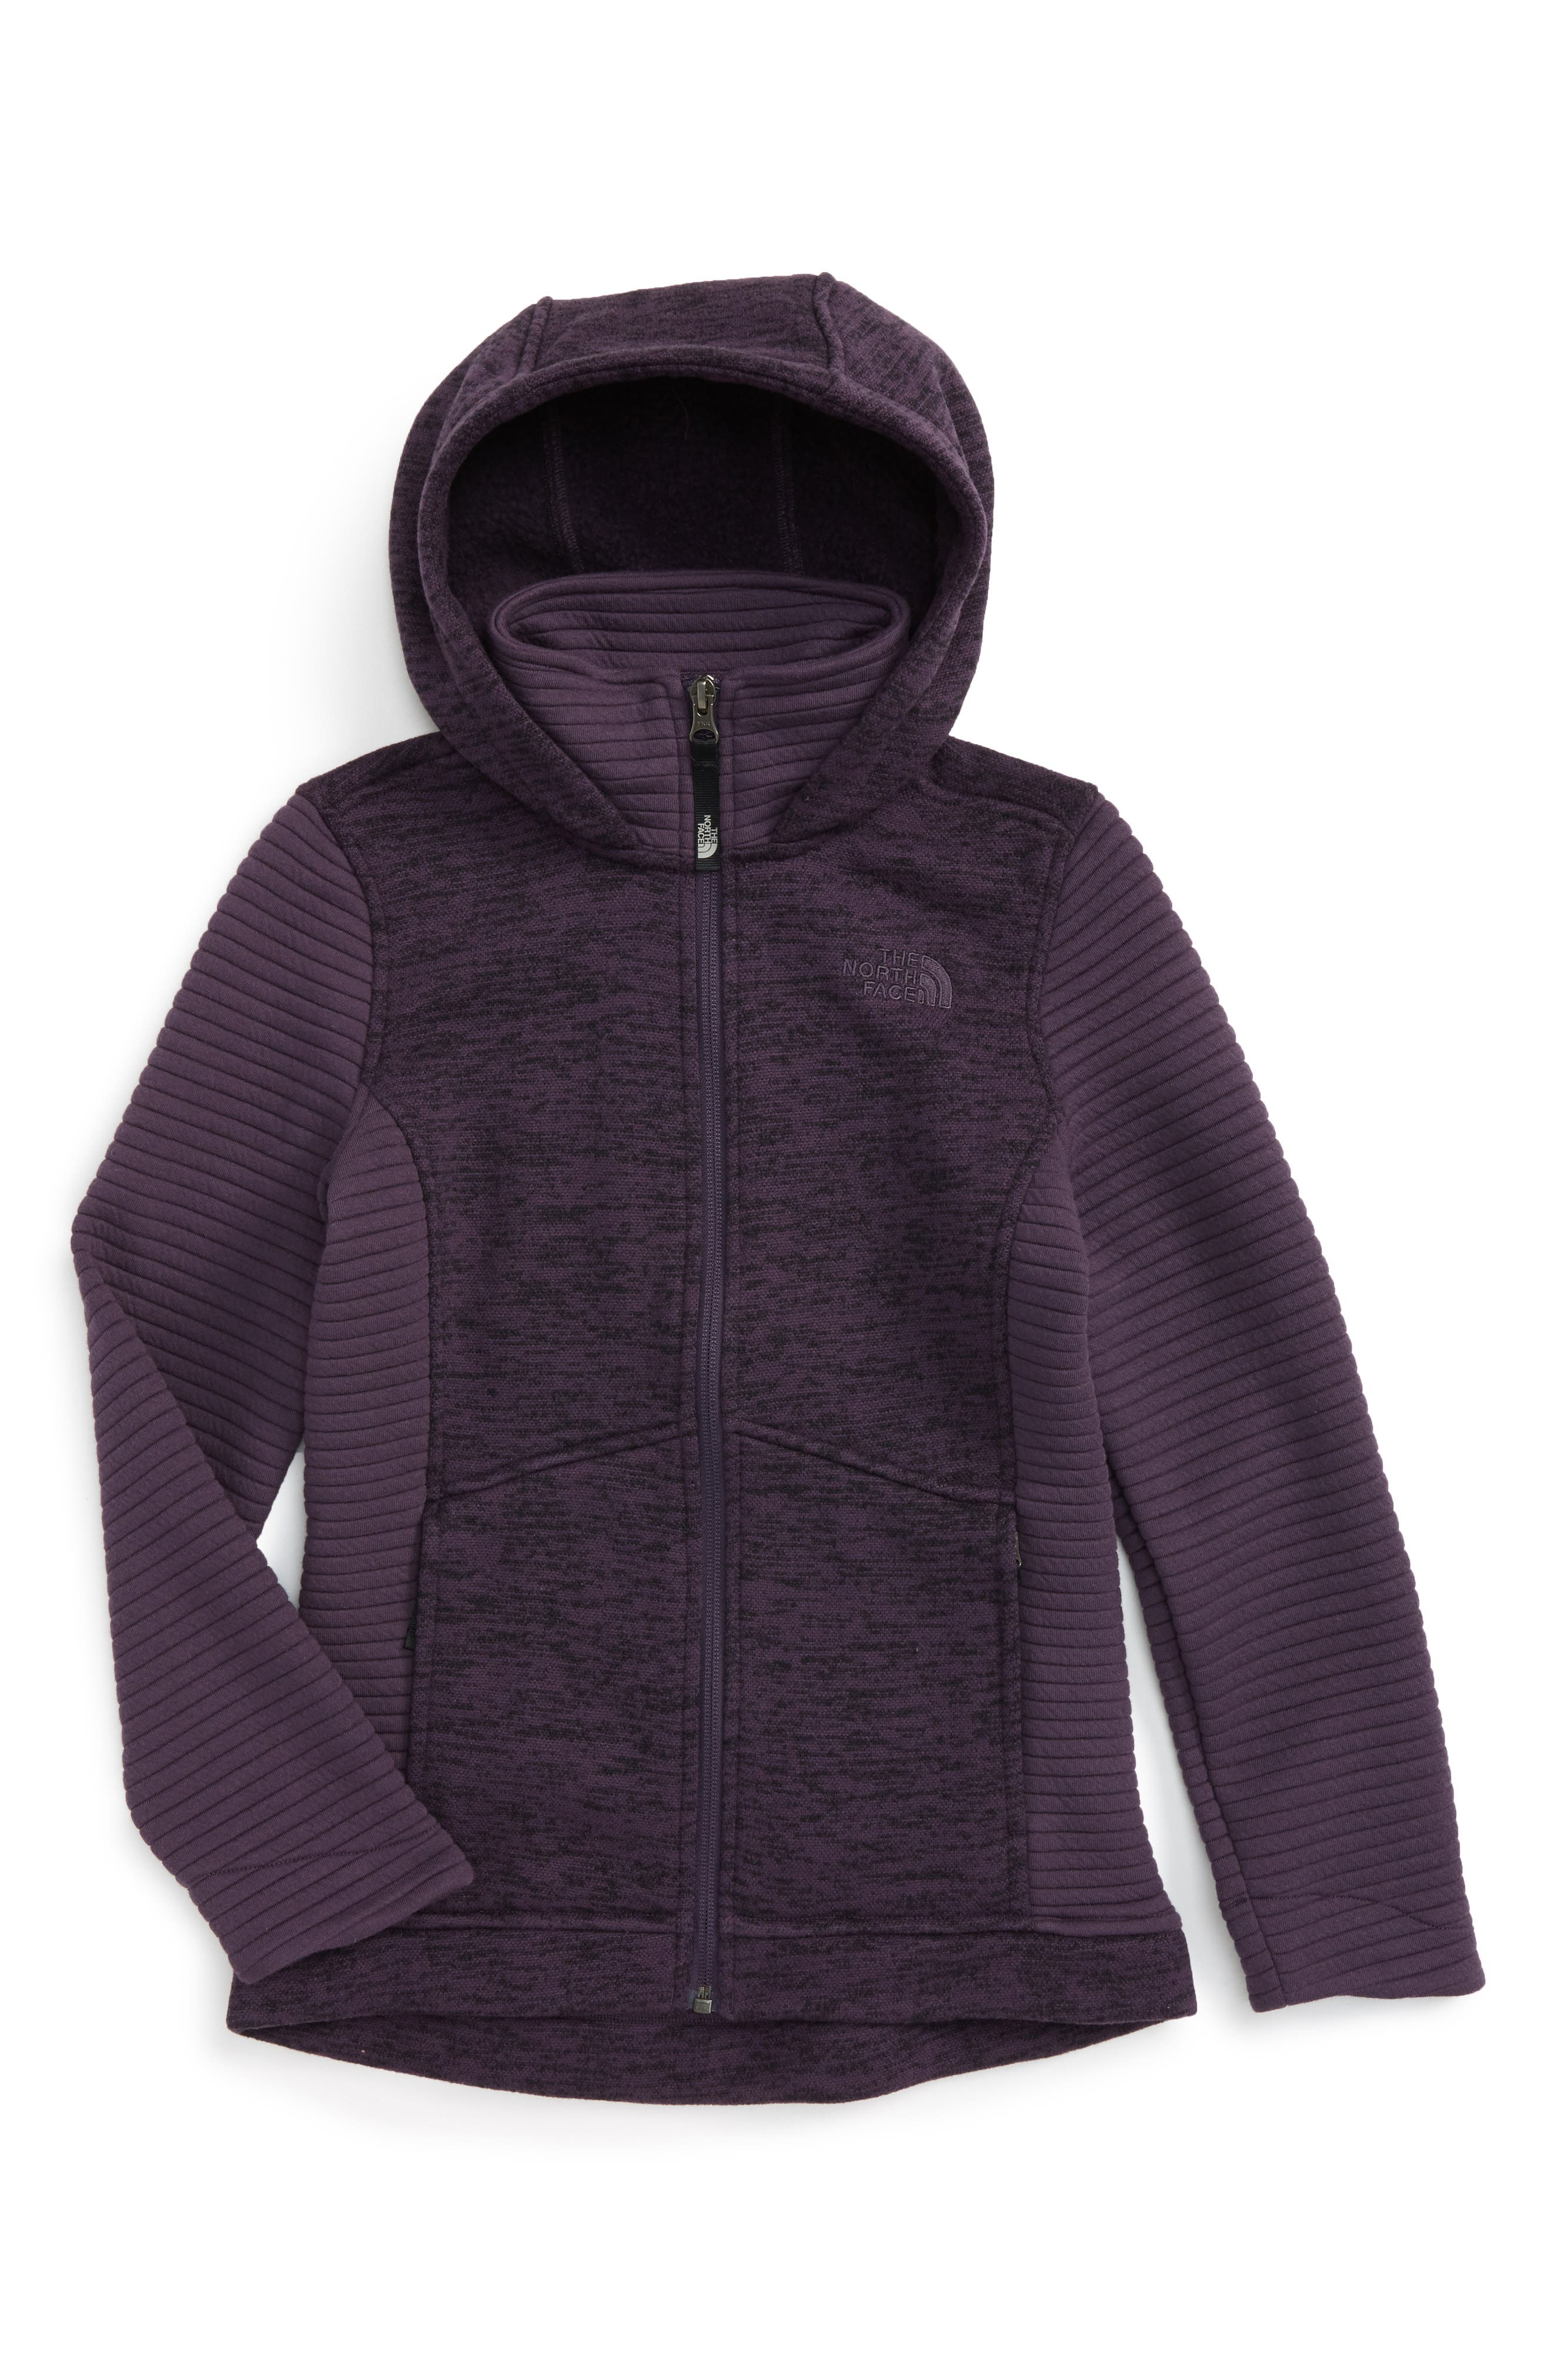 Alternate Image 1 Selected - The North Face Indi 2 Hooded Knit Parka (Big Girls)